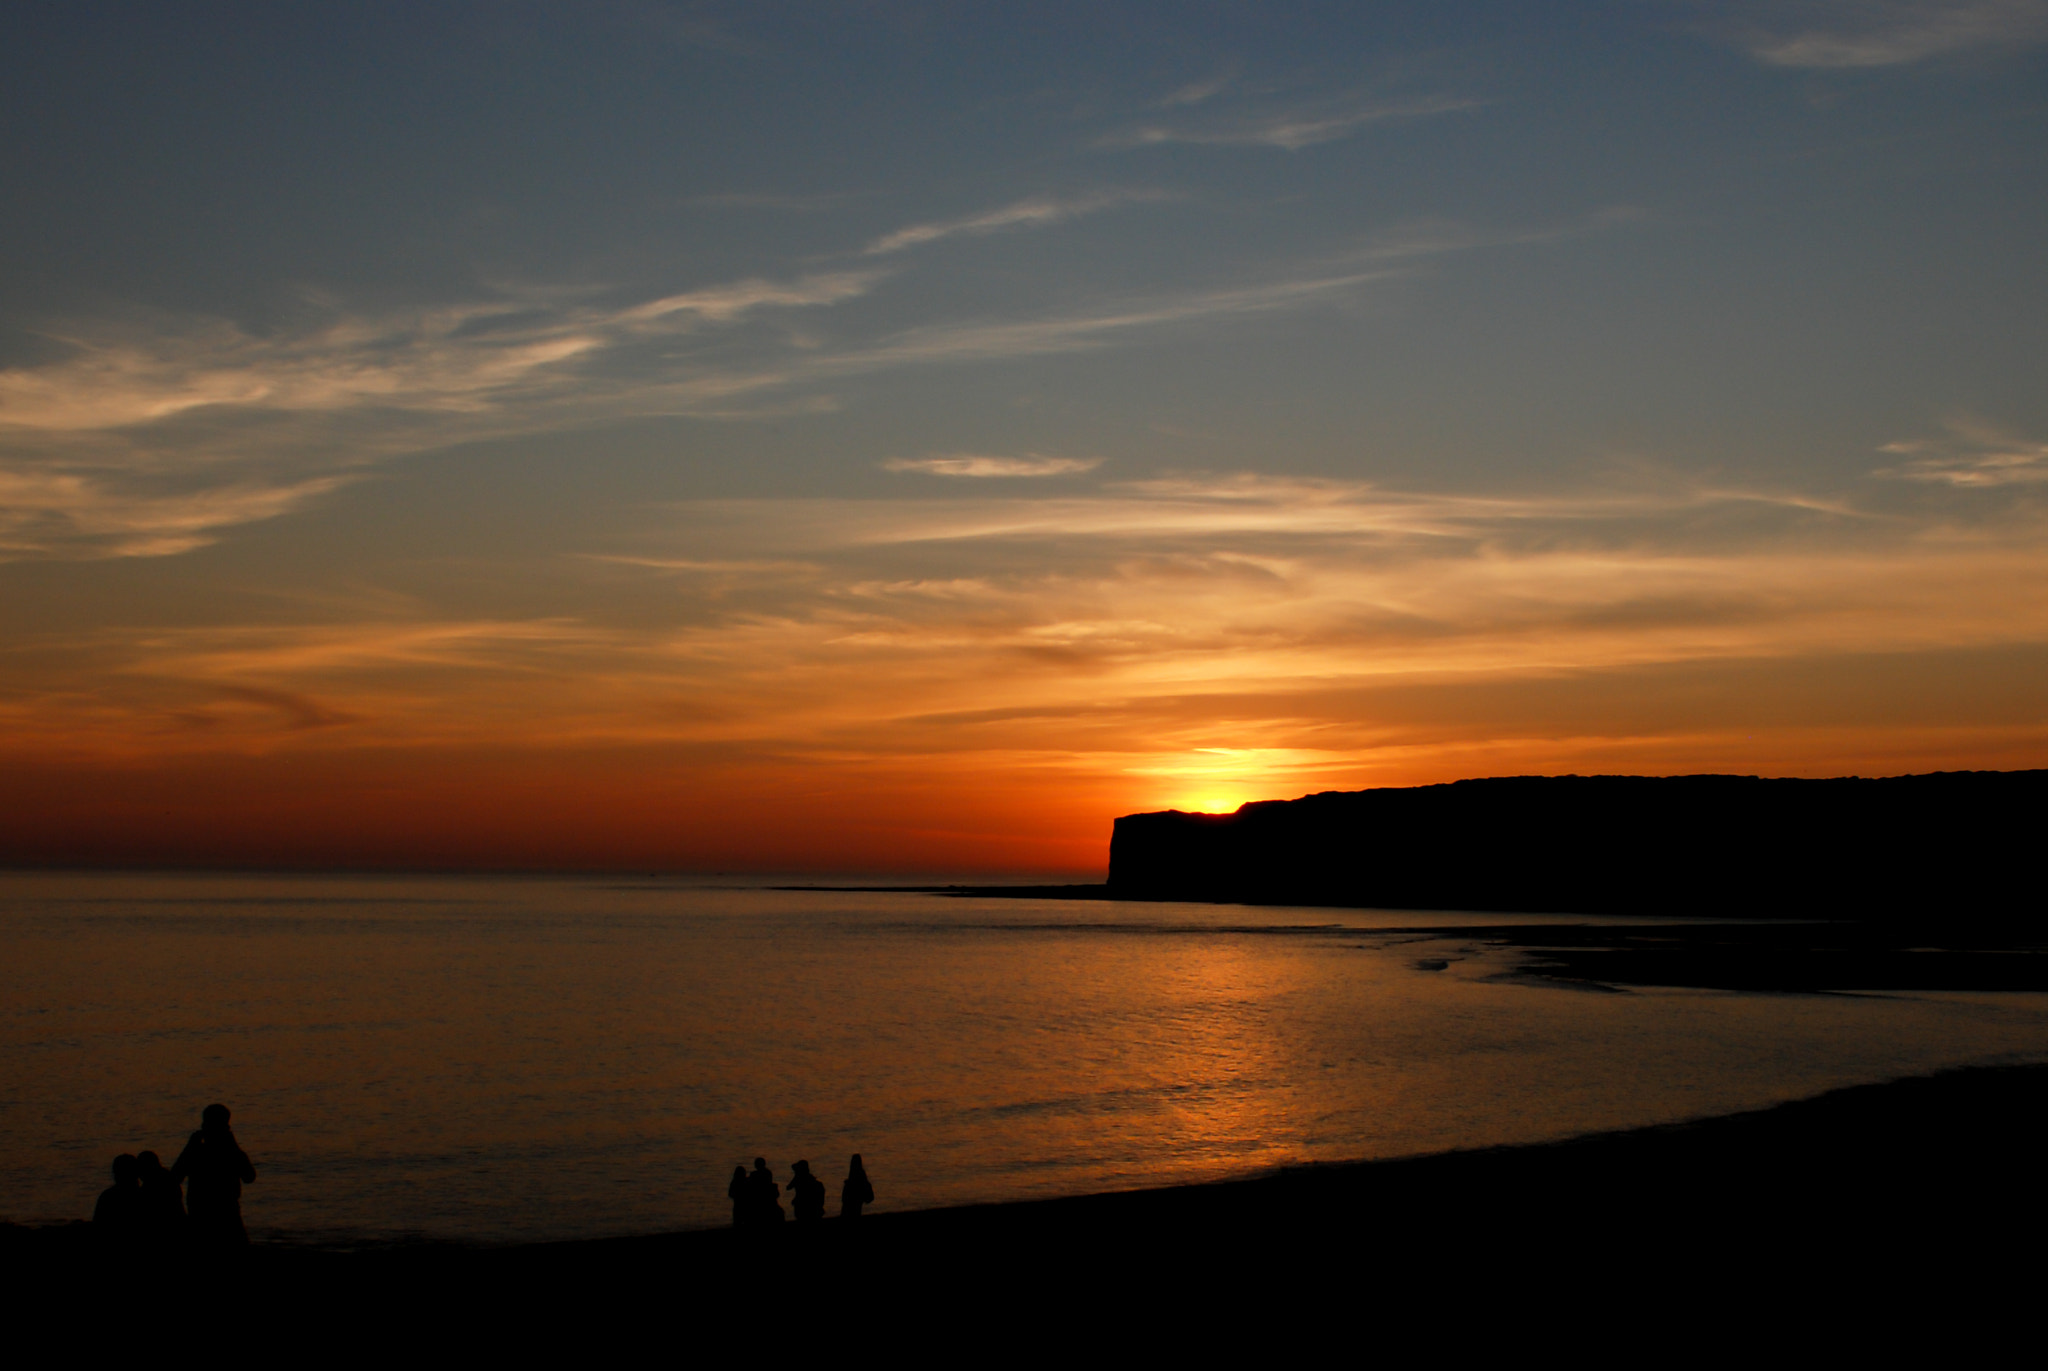 Photograph Sunset over chalky cliffs near Seaford by Hubert Mical on 500px